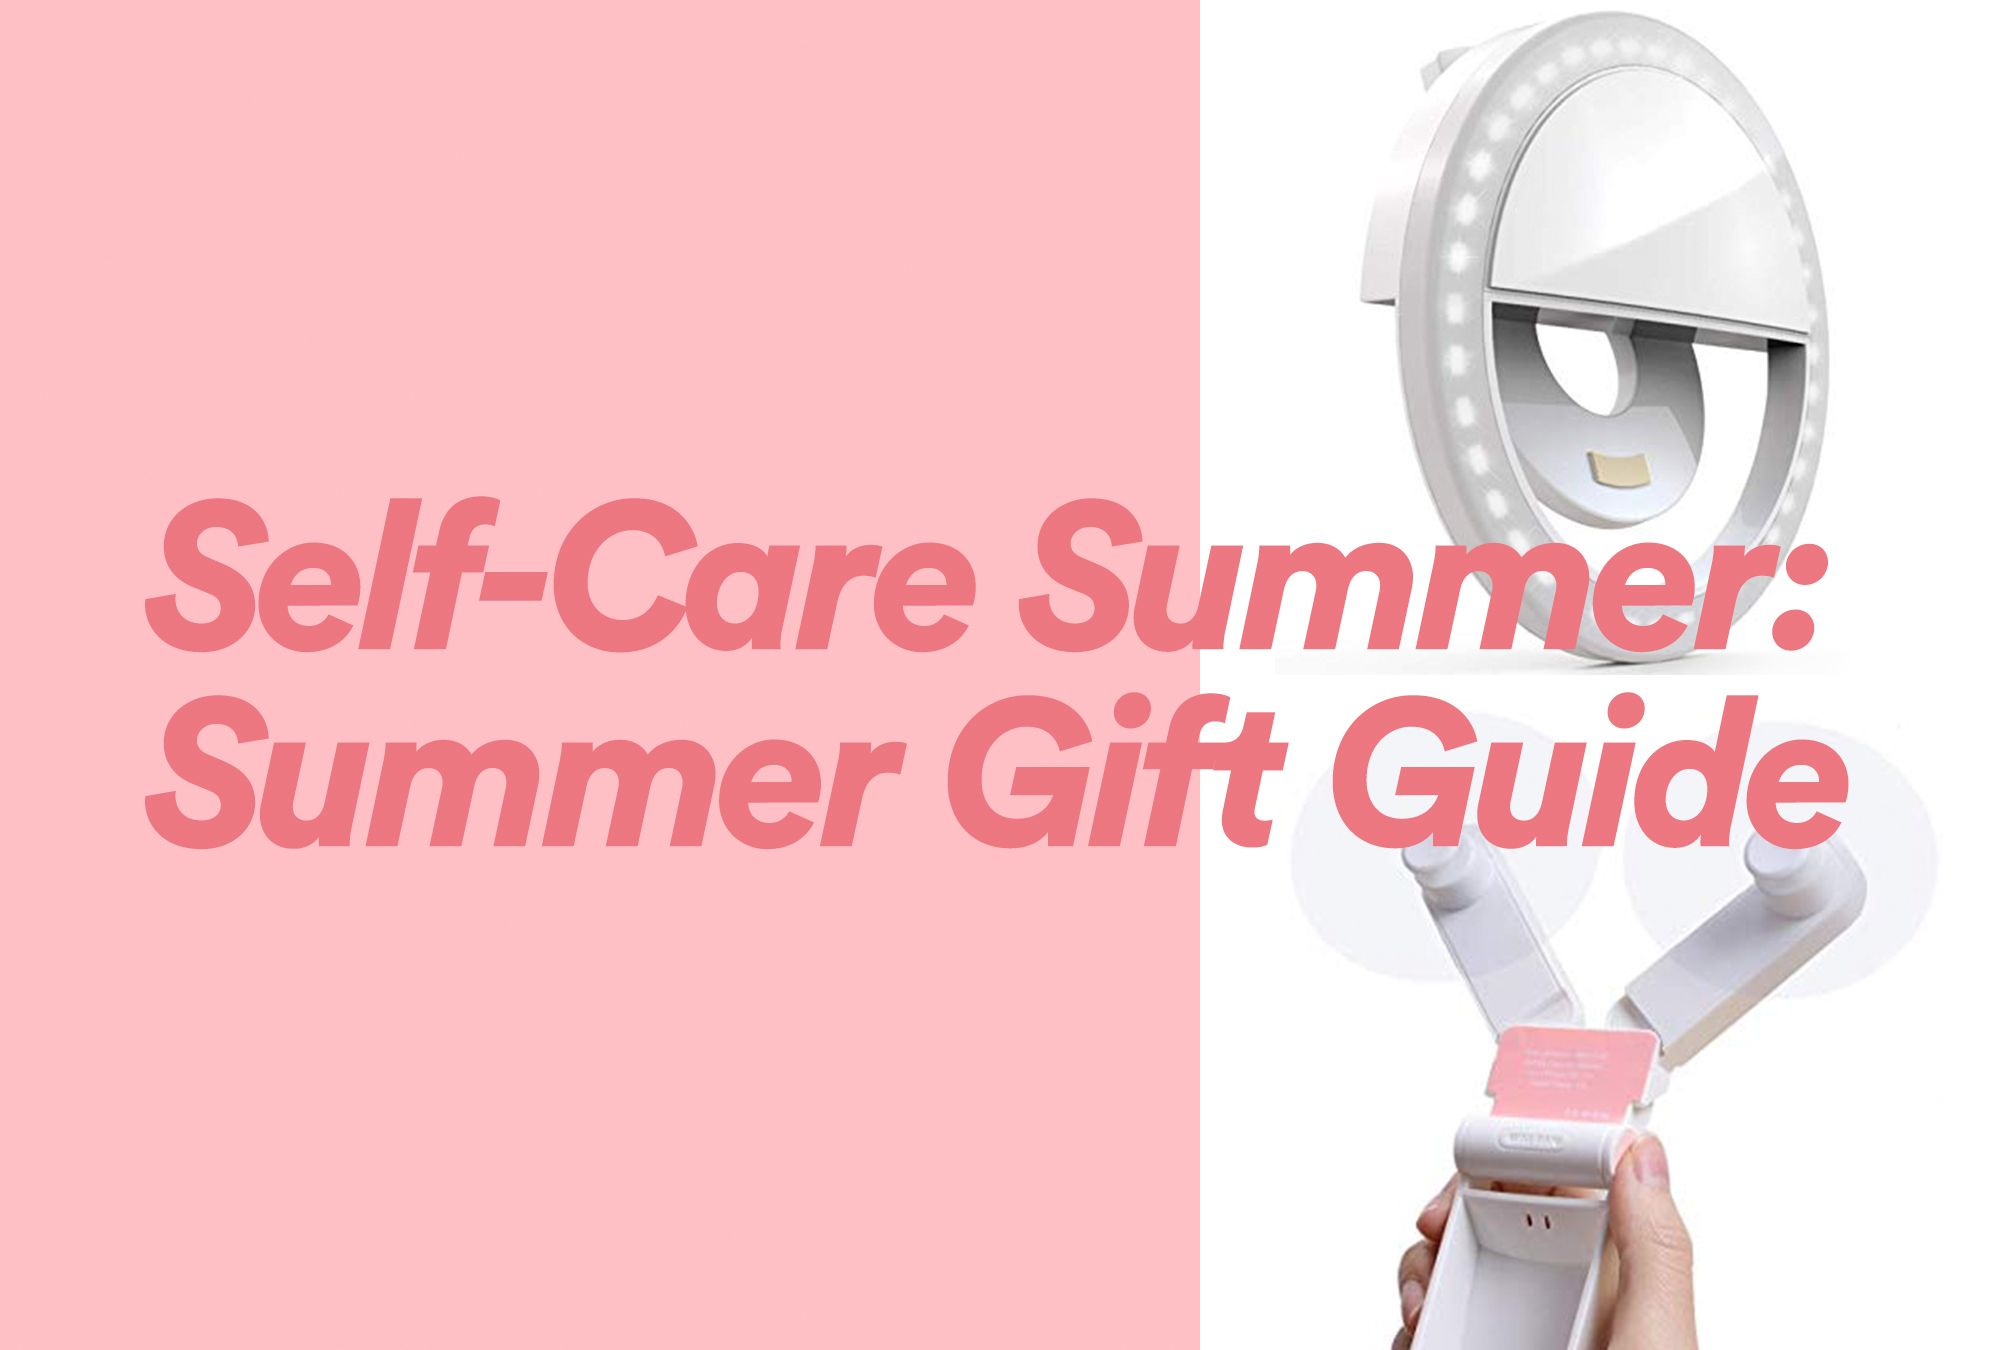 Self-Care Summer: Summer Gift Guide